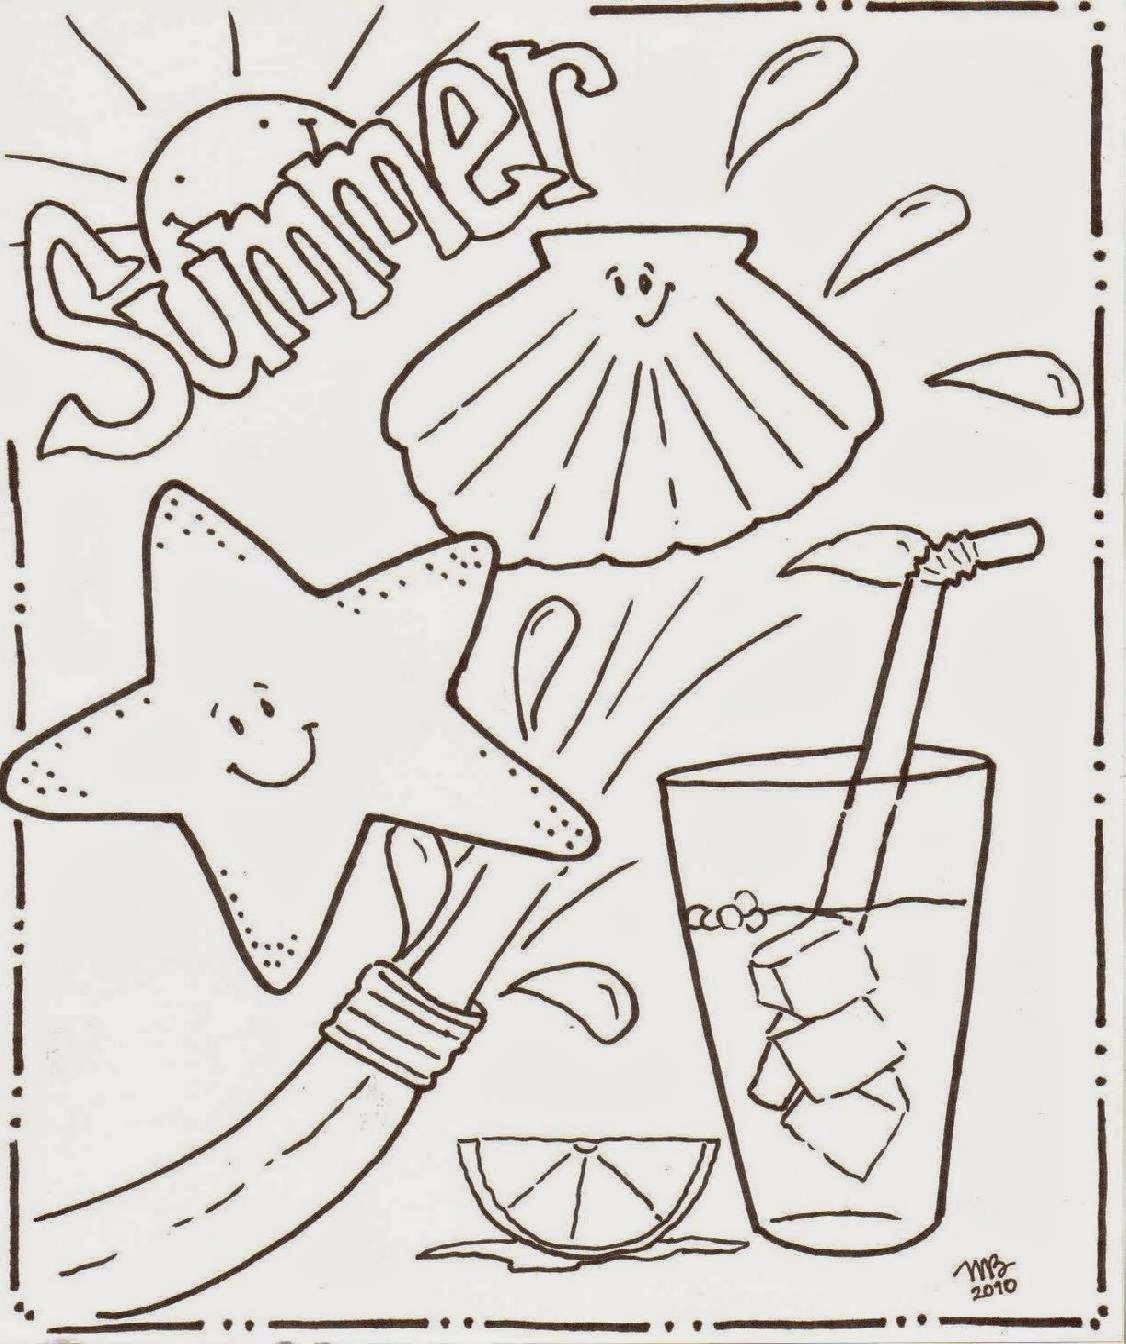 crayola coloring pages summer beach - photo#29